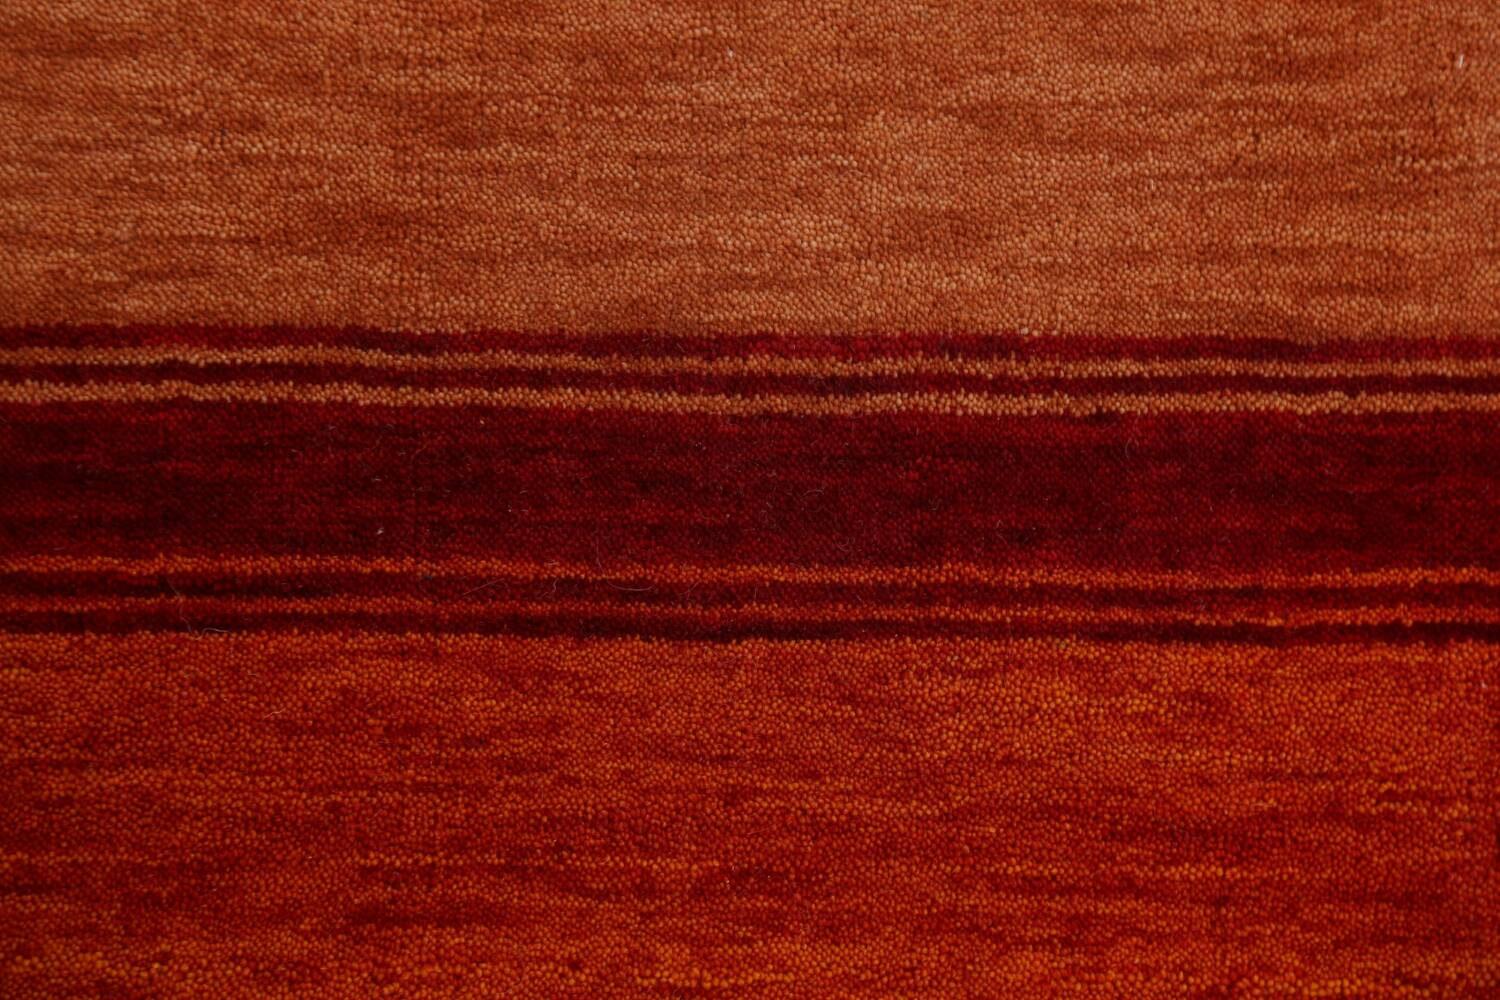 Contemporary Gabbeh Wool Area Rug 7x10 image 9